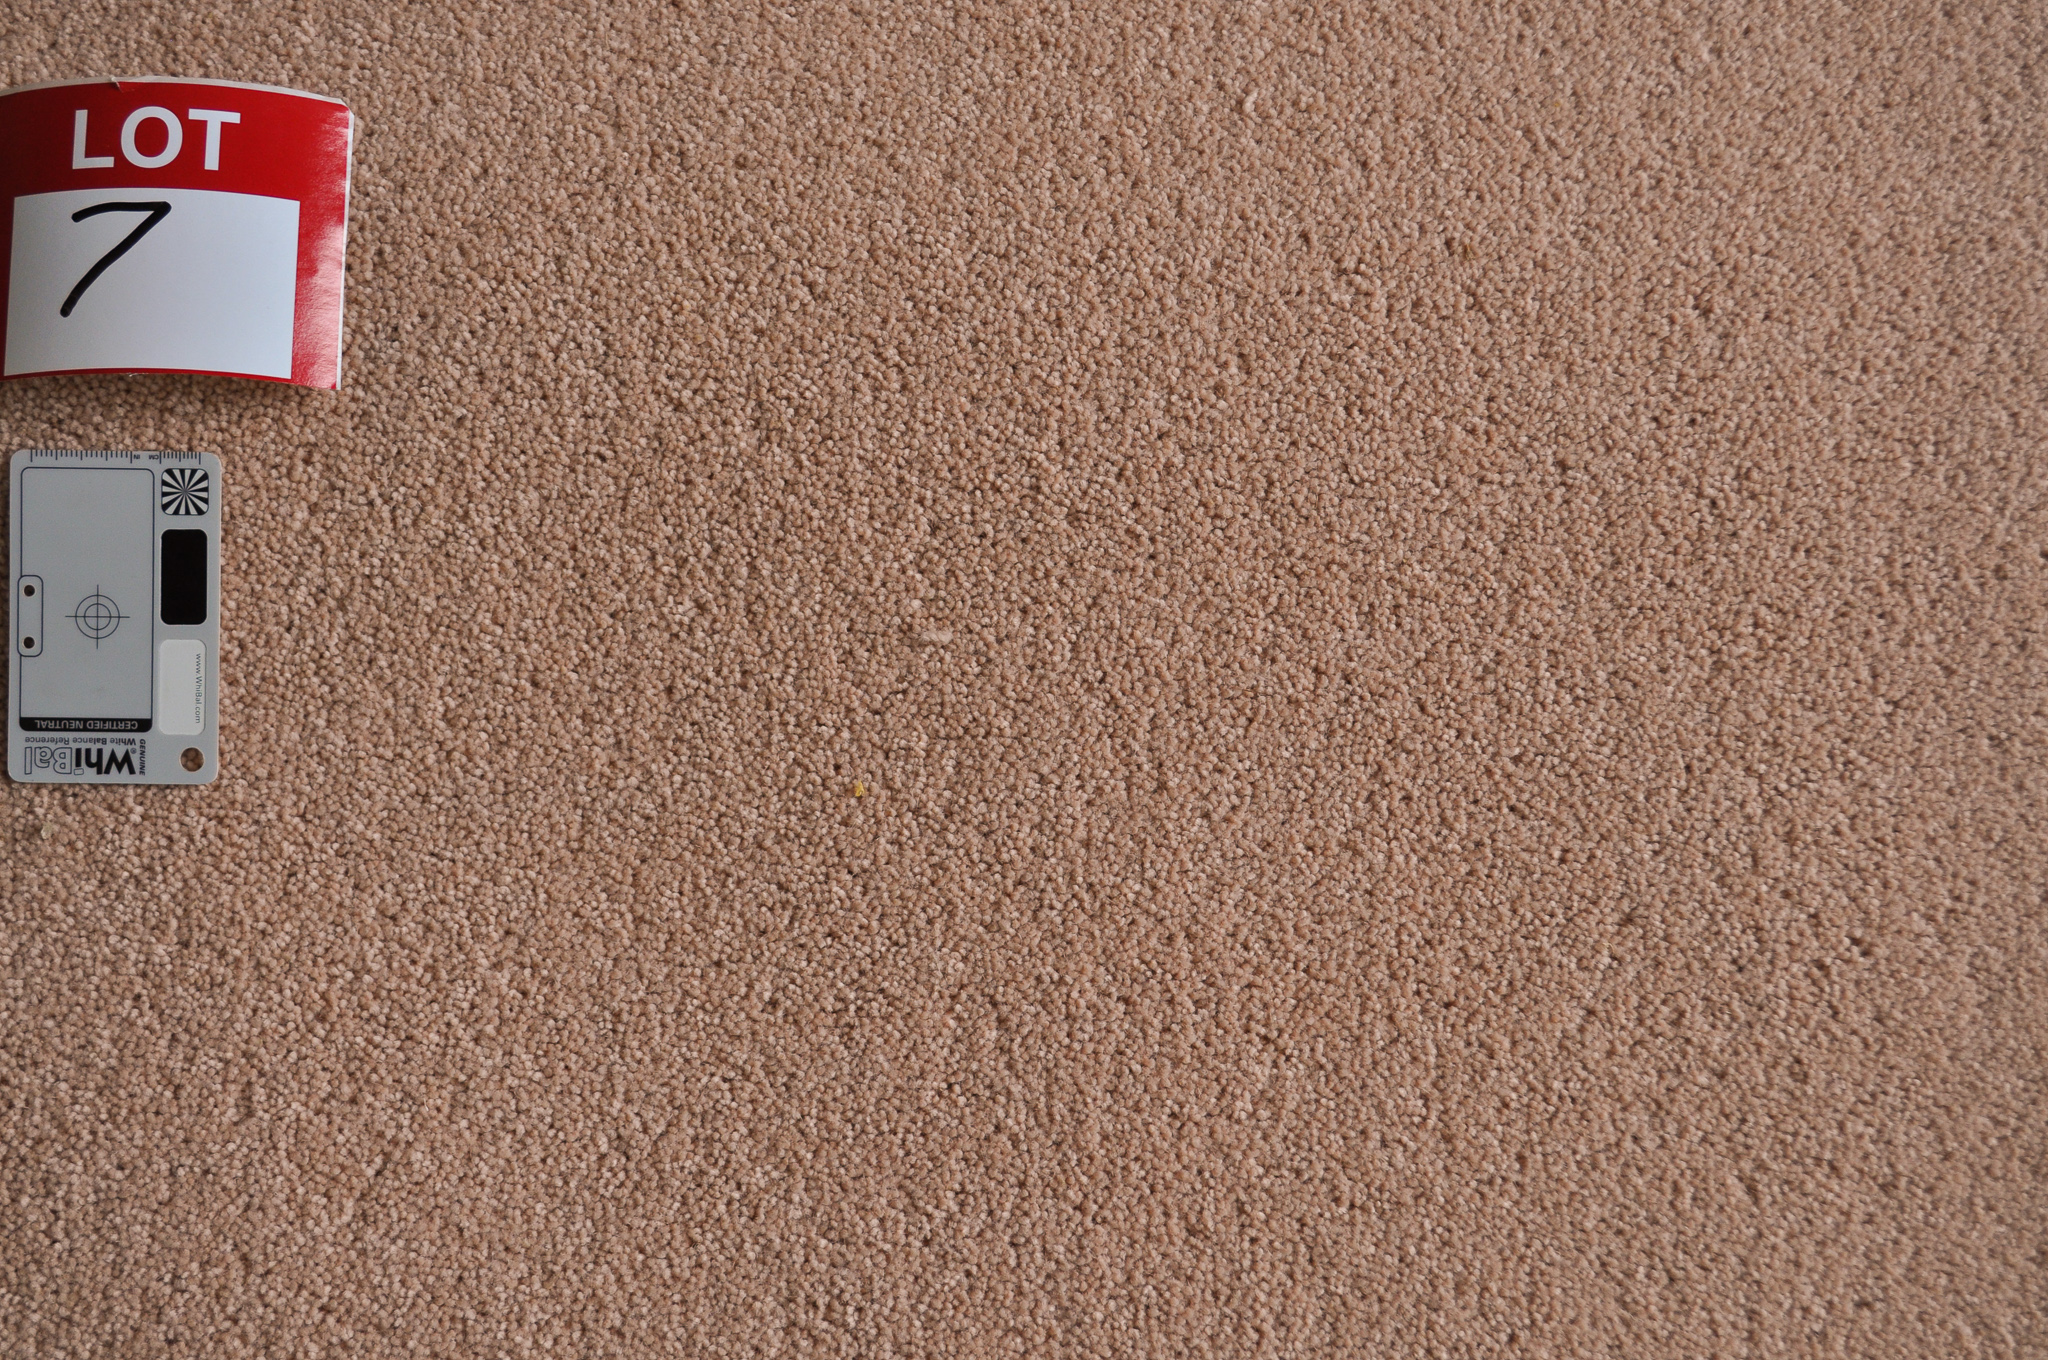 dusty pink, twist pile roll of carpet on sale at Concord Floors, it being a remnant roll in Concord Floor's warehouse.